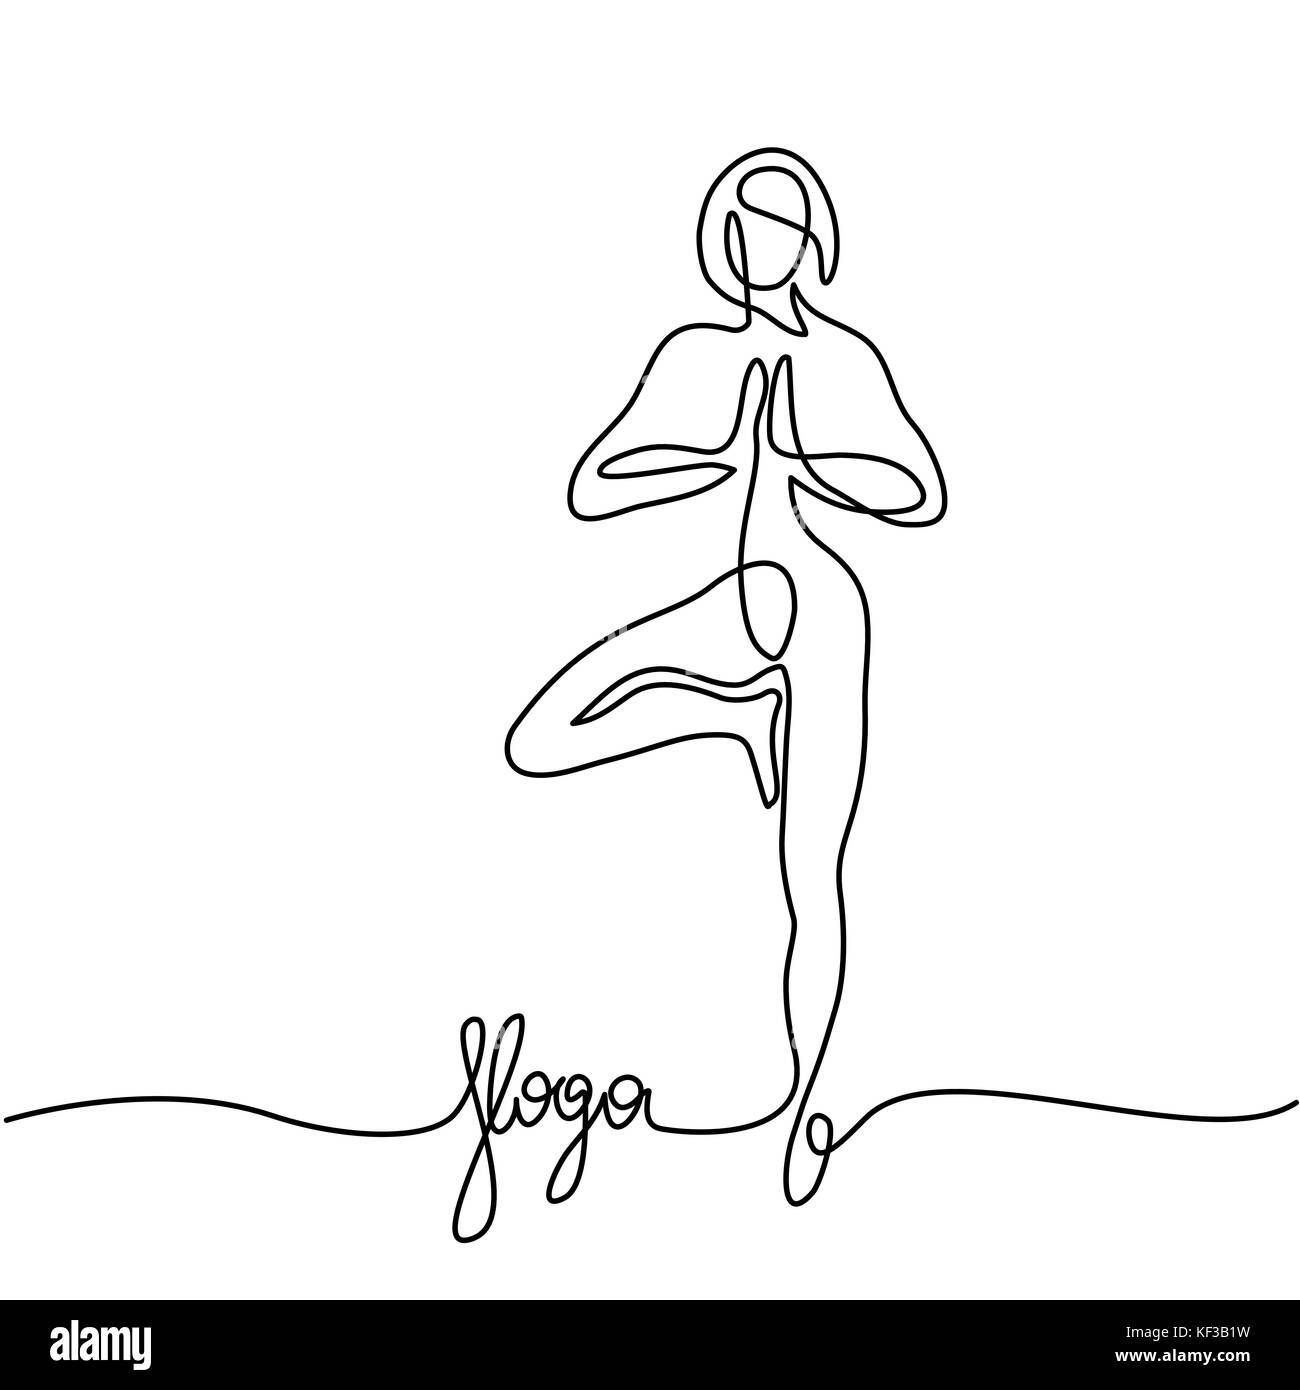 Woman doing exercise in yoga pose - Stock Vector